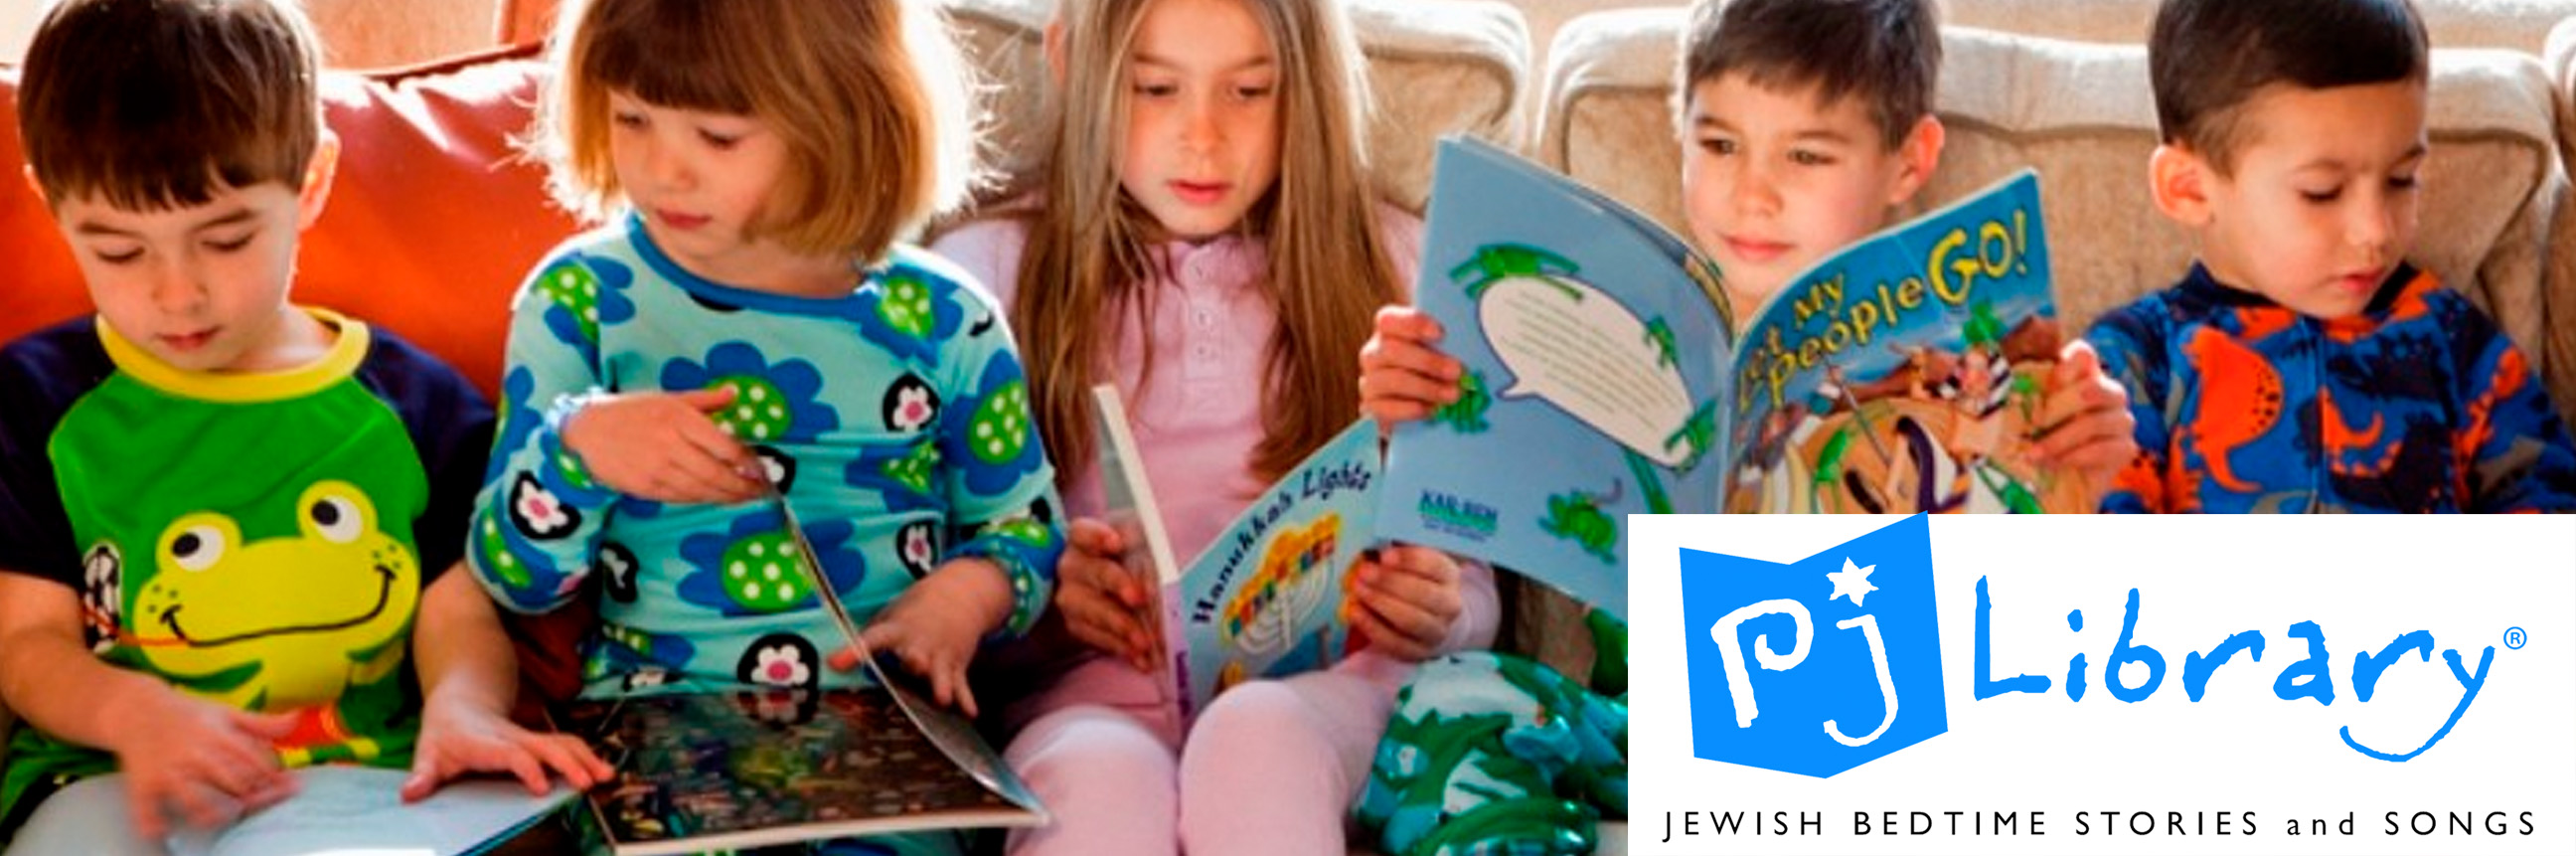 JCC of the Lehigh Valley Allentown PJ Library